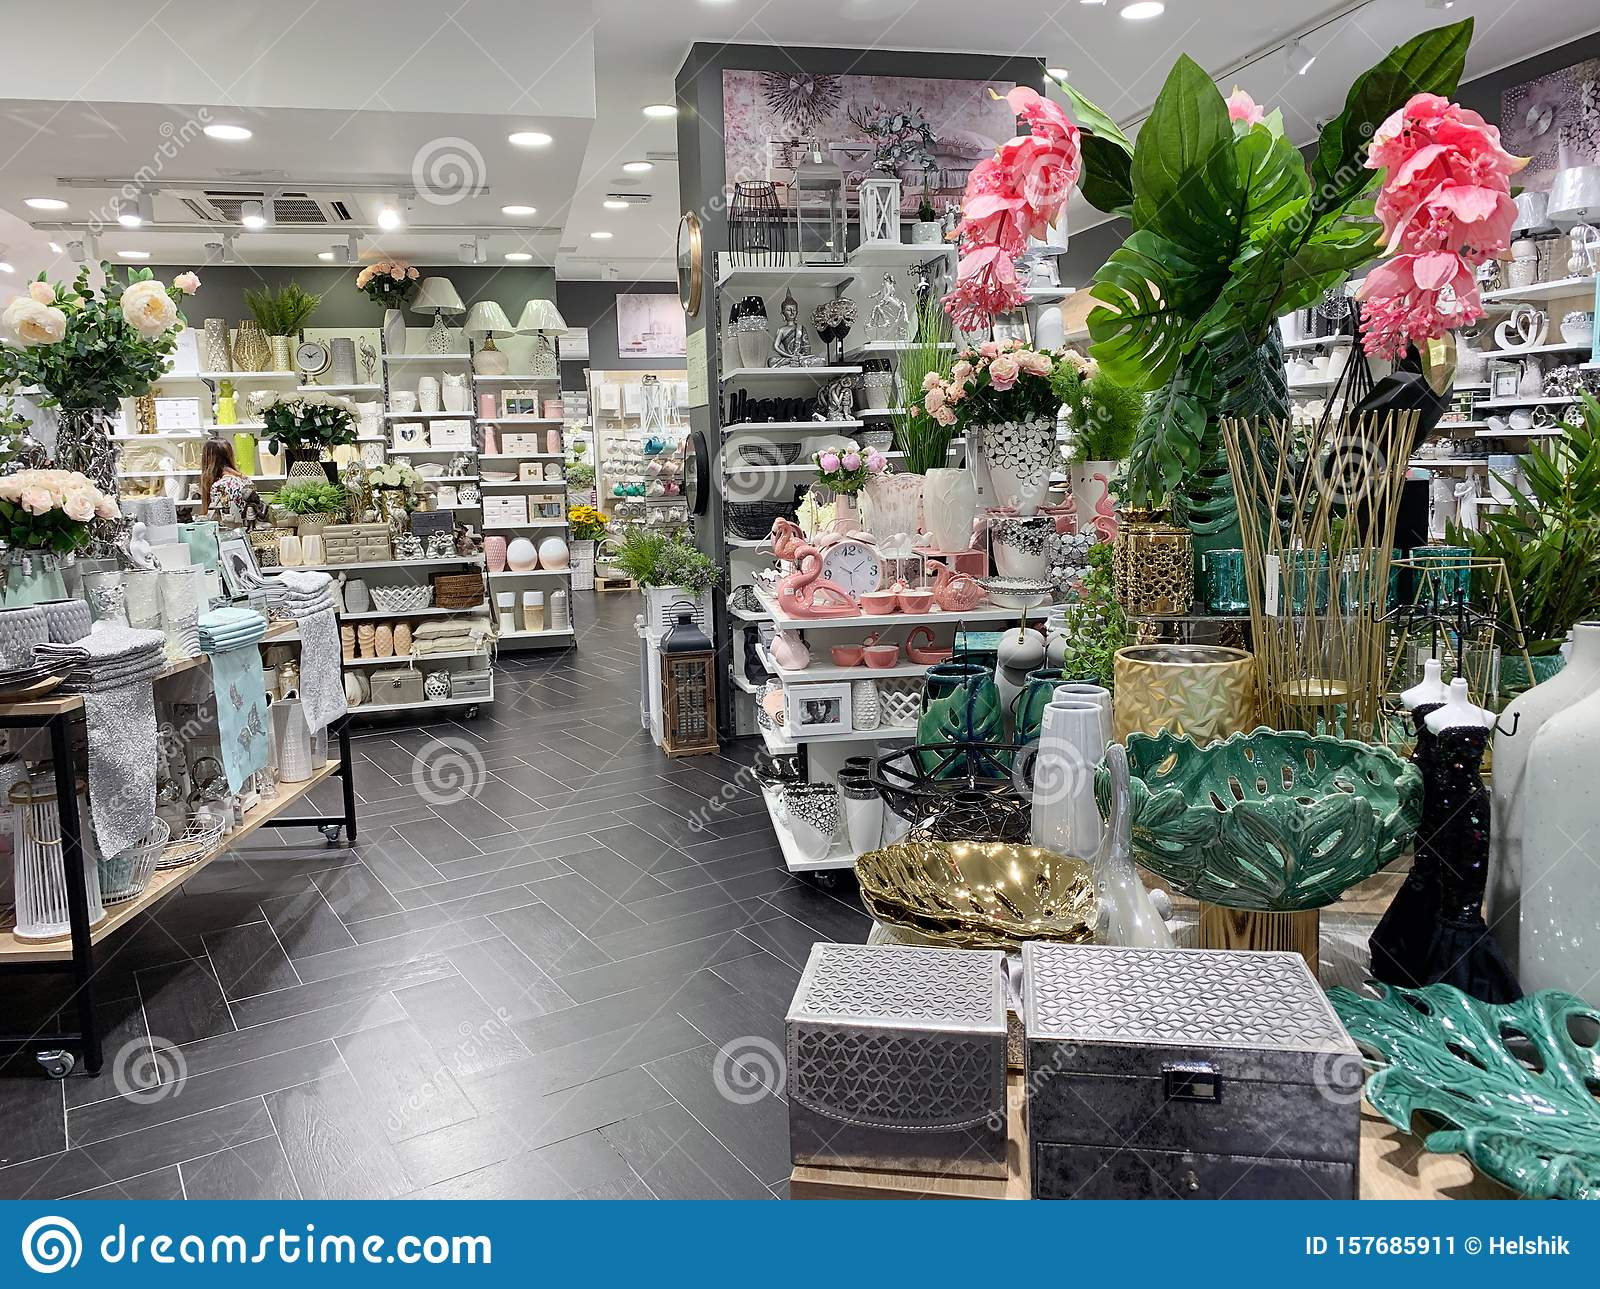 Home Decorations In Decorations Store Modern Textile Shop For Towels And Interior Decor Editorial Photo Image Of Commercial Cabinet 157685911